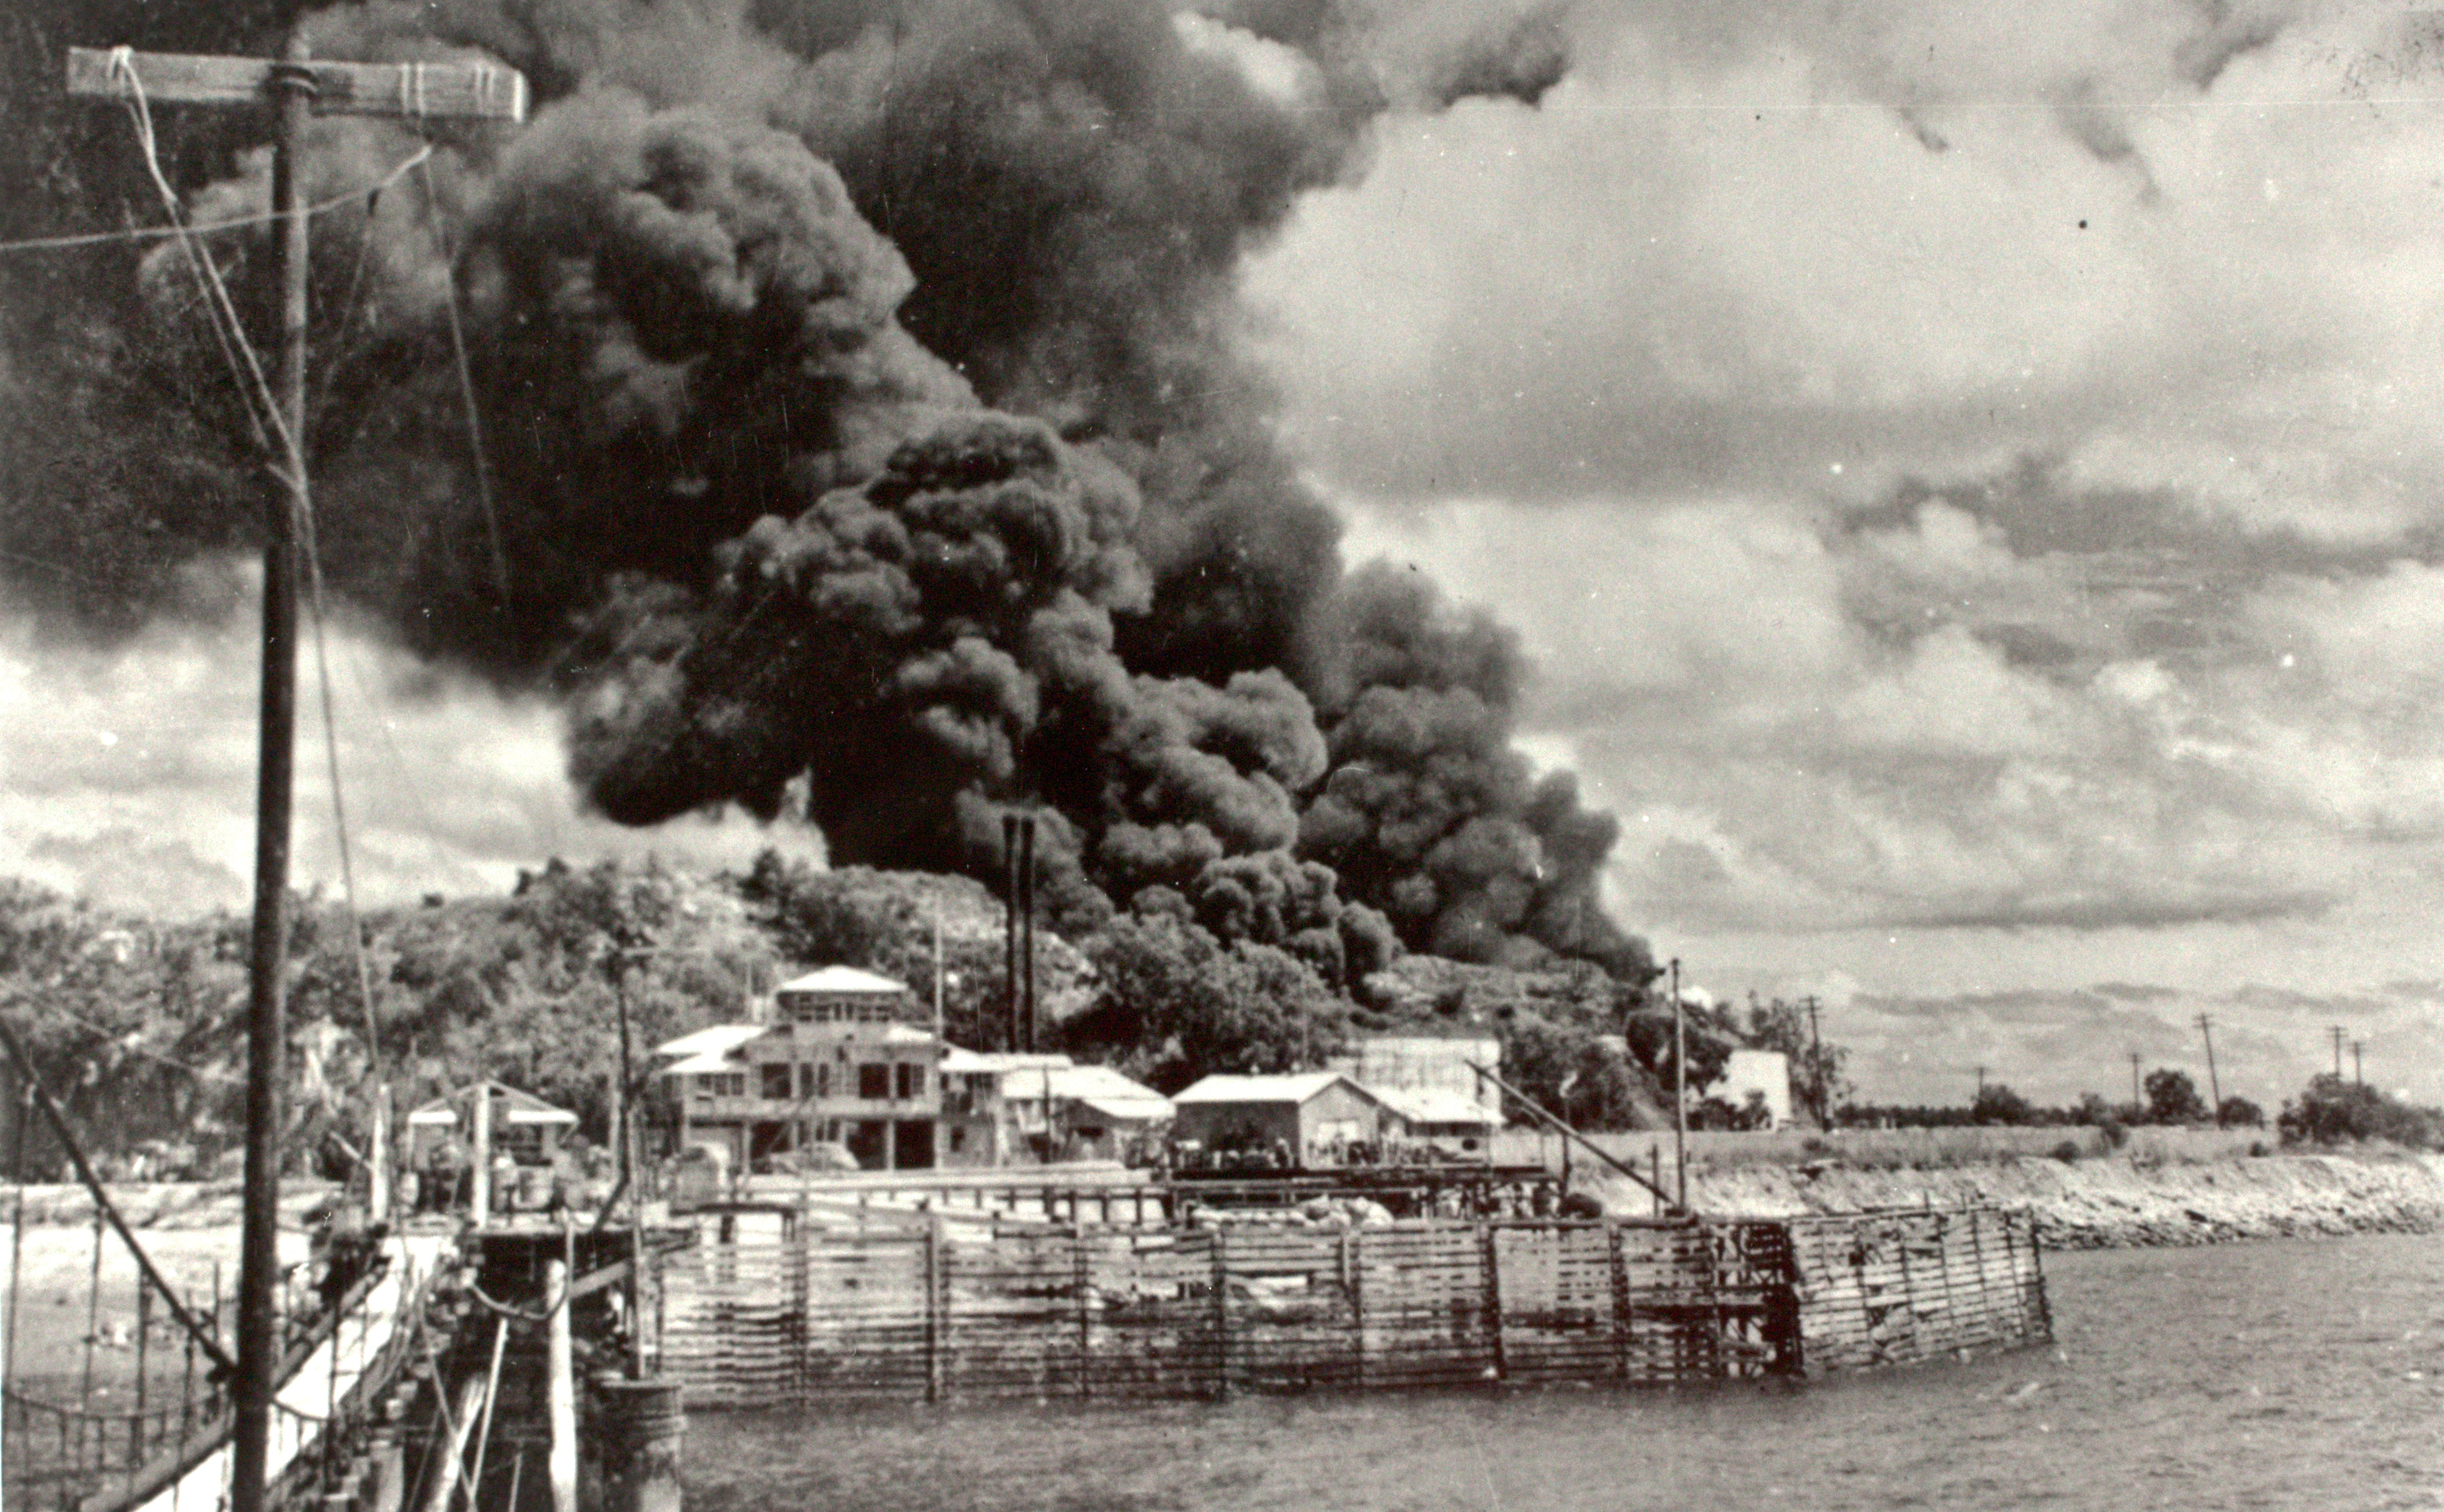 View from Stokes Hill Wharf looking back at burning oil tanks after a bombing raid.